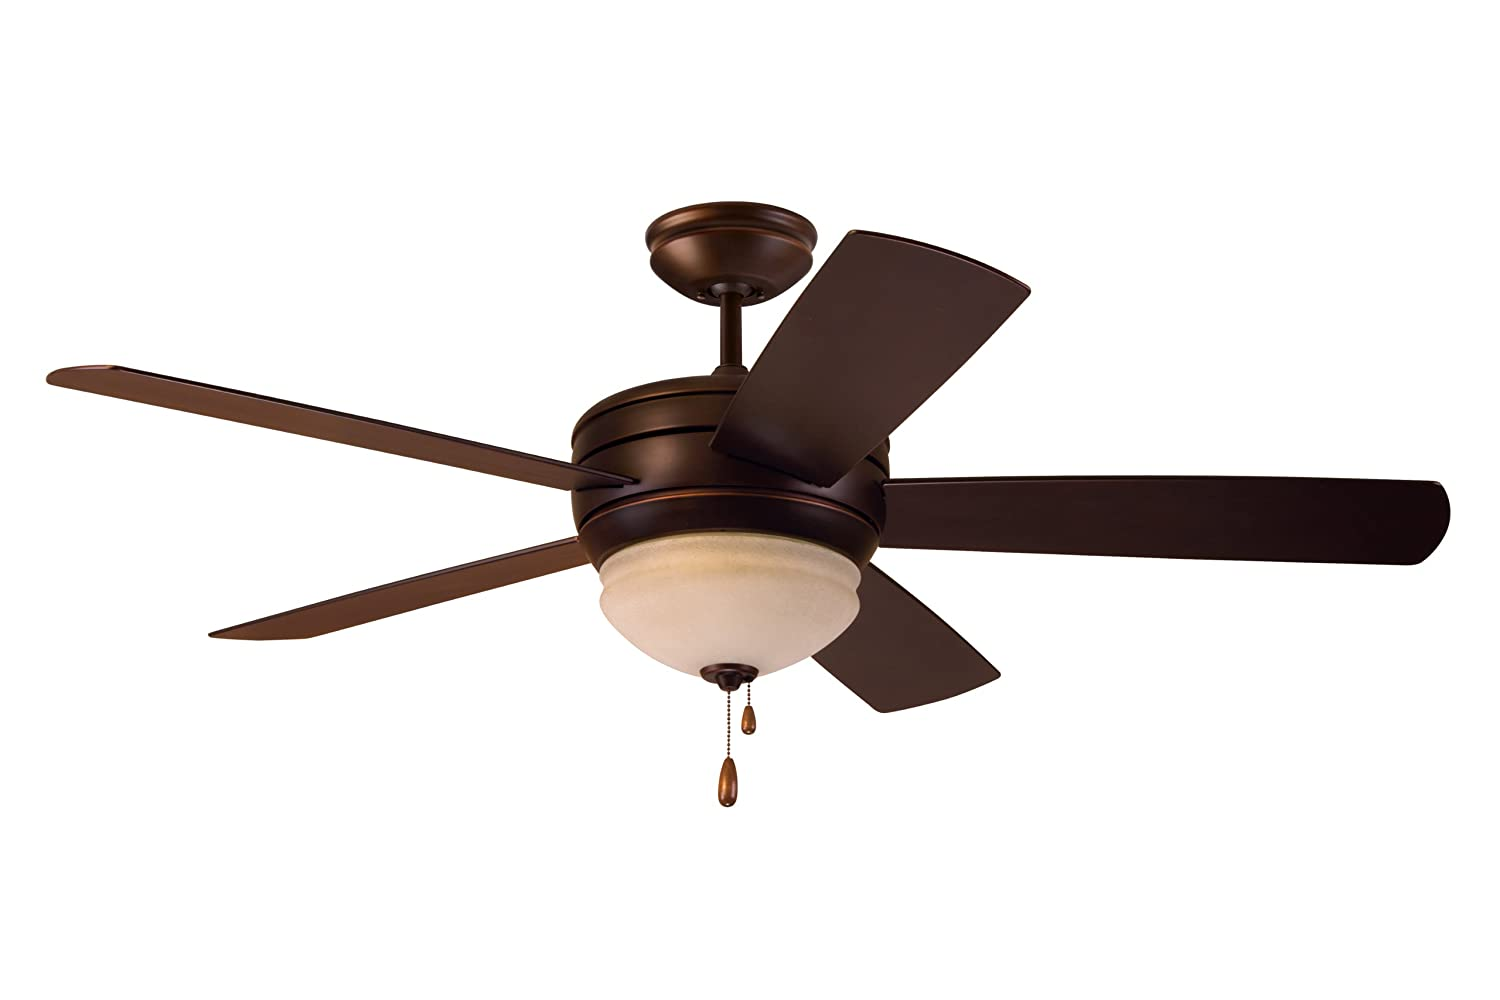 Emerson ceiling fans cf850vnb summerhaven 52 inch indoor outdoor emerson ceiling fans cf850vnb summerhaven 52 inch indoor outdoor ceiling fan with light wet rated ceiling fans in venetian bronze finish amazon aloadofball Choice Image